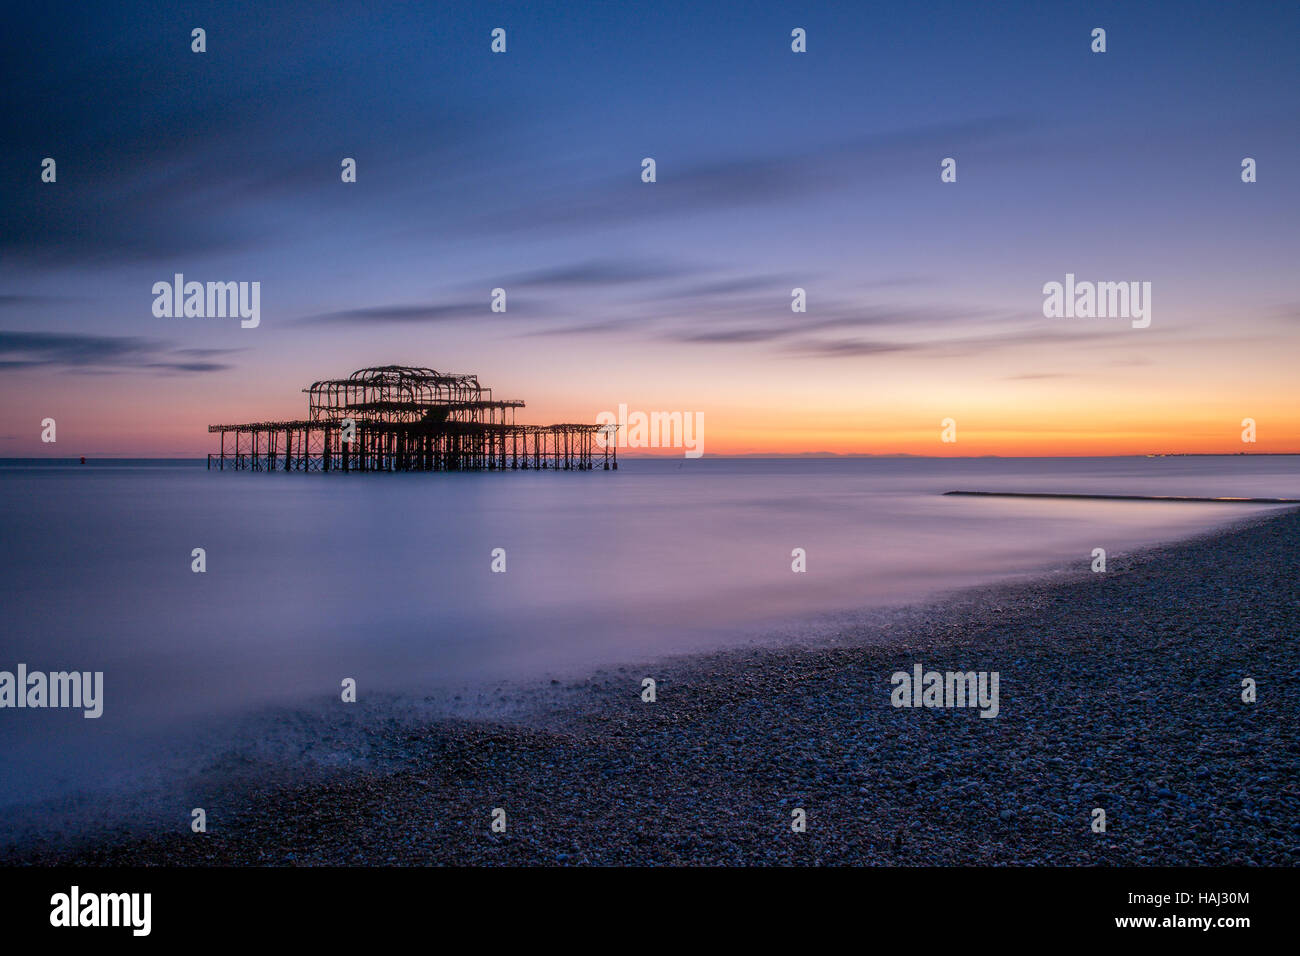 Calming sunset at the West Pier - Stock Image